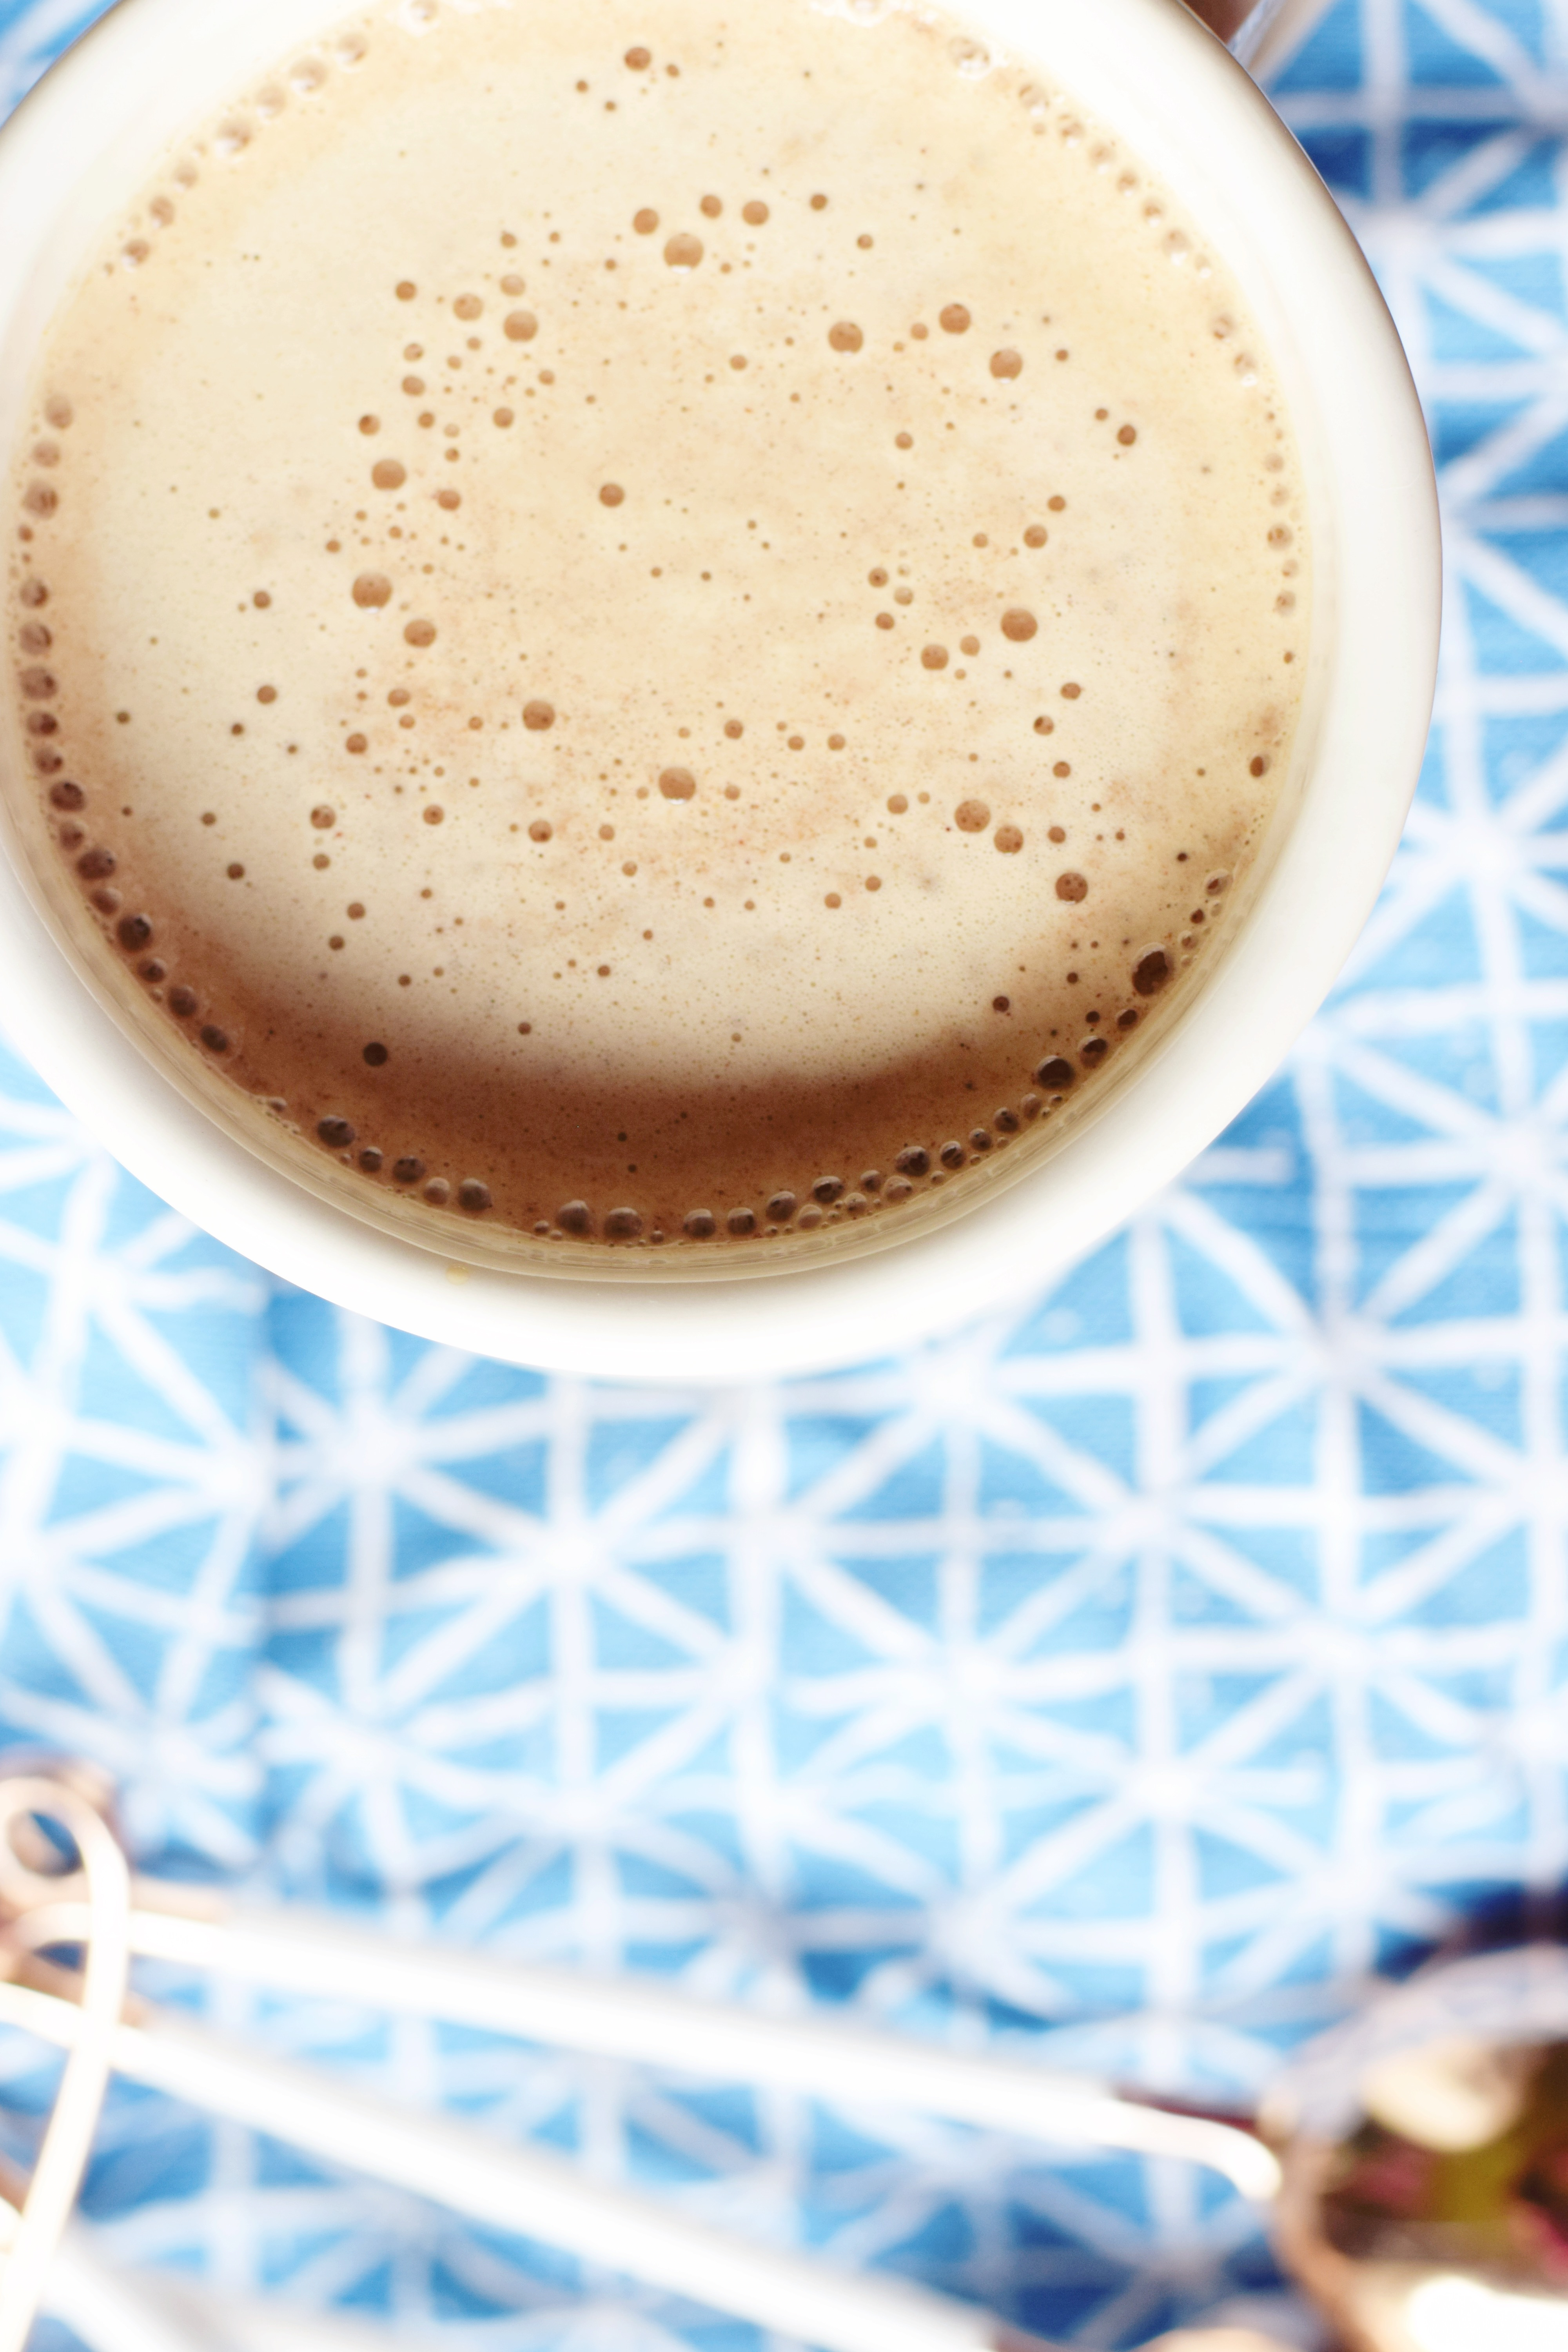 Pumpkin Pie Bulletproof Coffee - Bulletproof Coffee - Bulletproof Coffee Recipe - Bulletproof Coffee Benefits - Fall Coffee Recipe - How To Make Bulletproof Coffee - Pumpkin Pie Spice Cofee - Pumpkin Spice Coffee - Fall Coffee Recipe